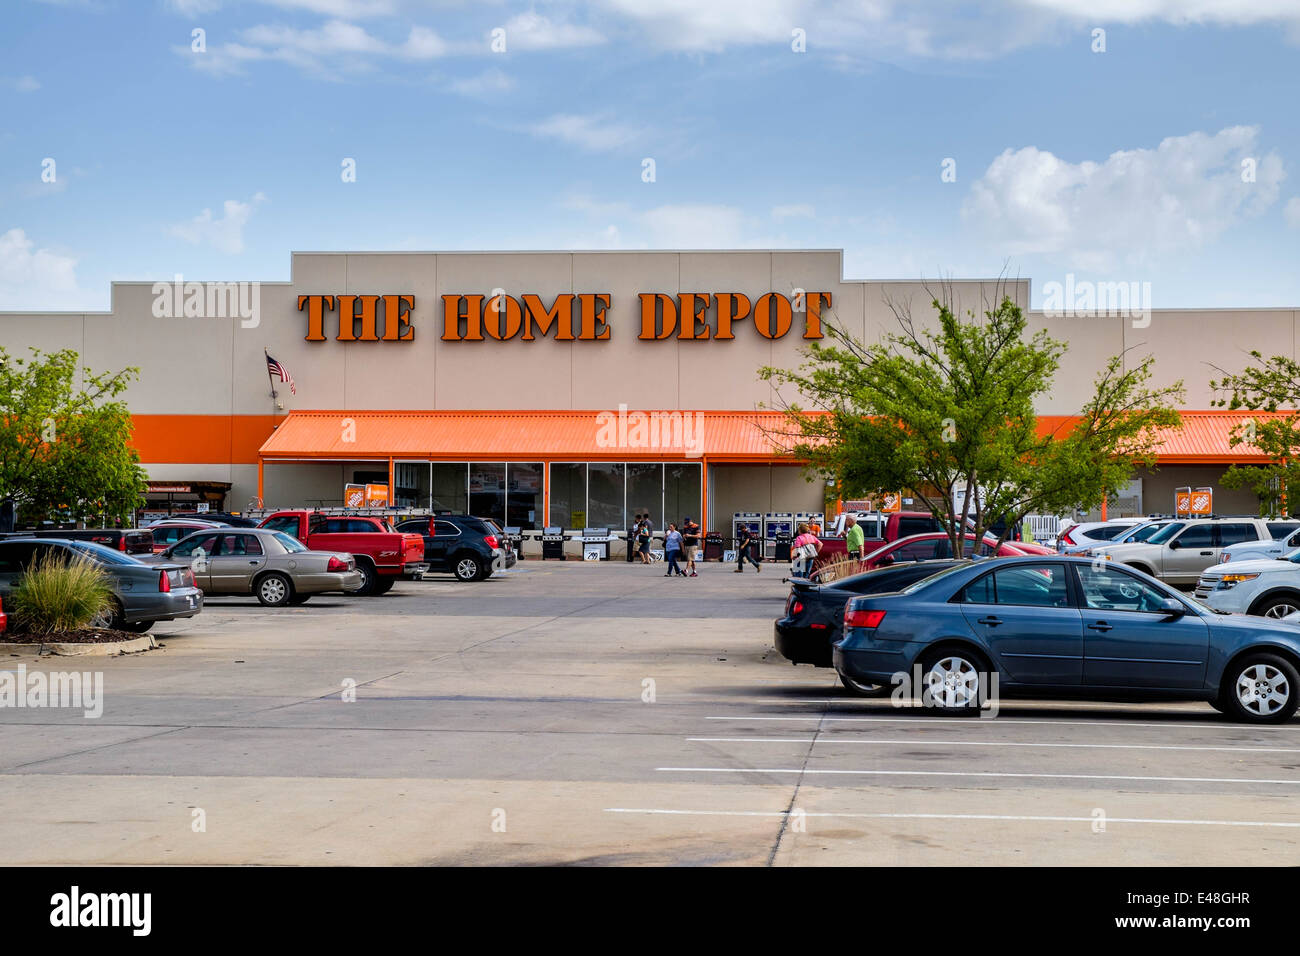 The Front Entry Exterior Of The Home Depot, A Chain